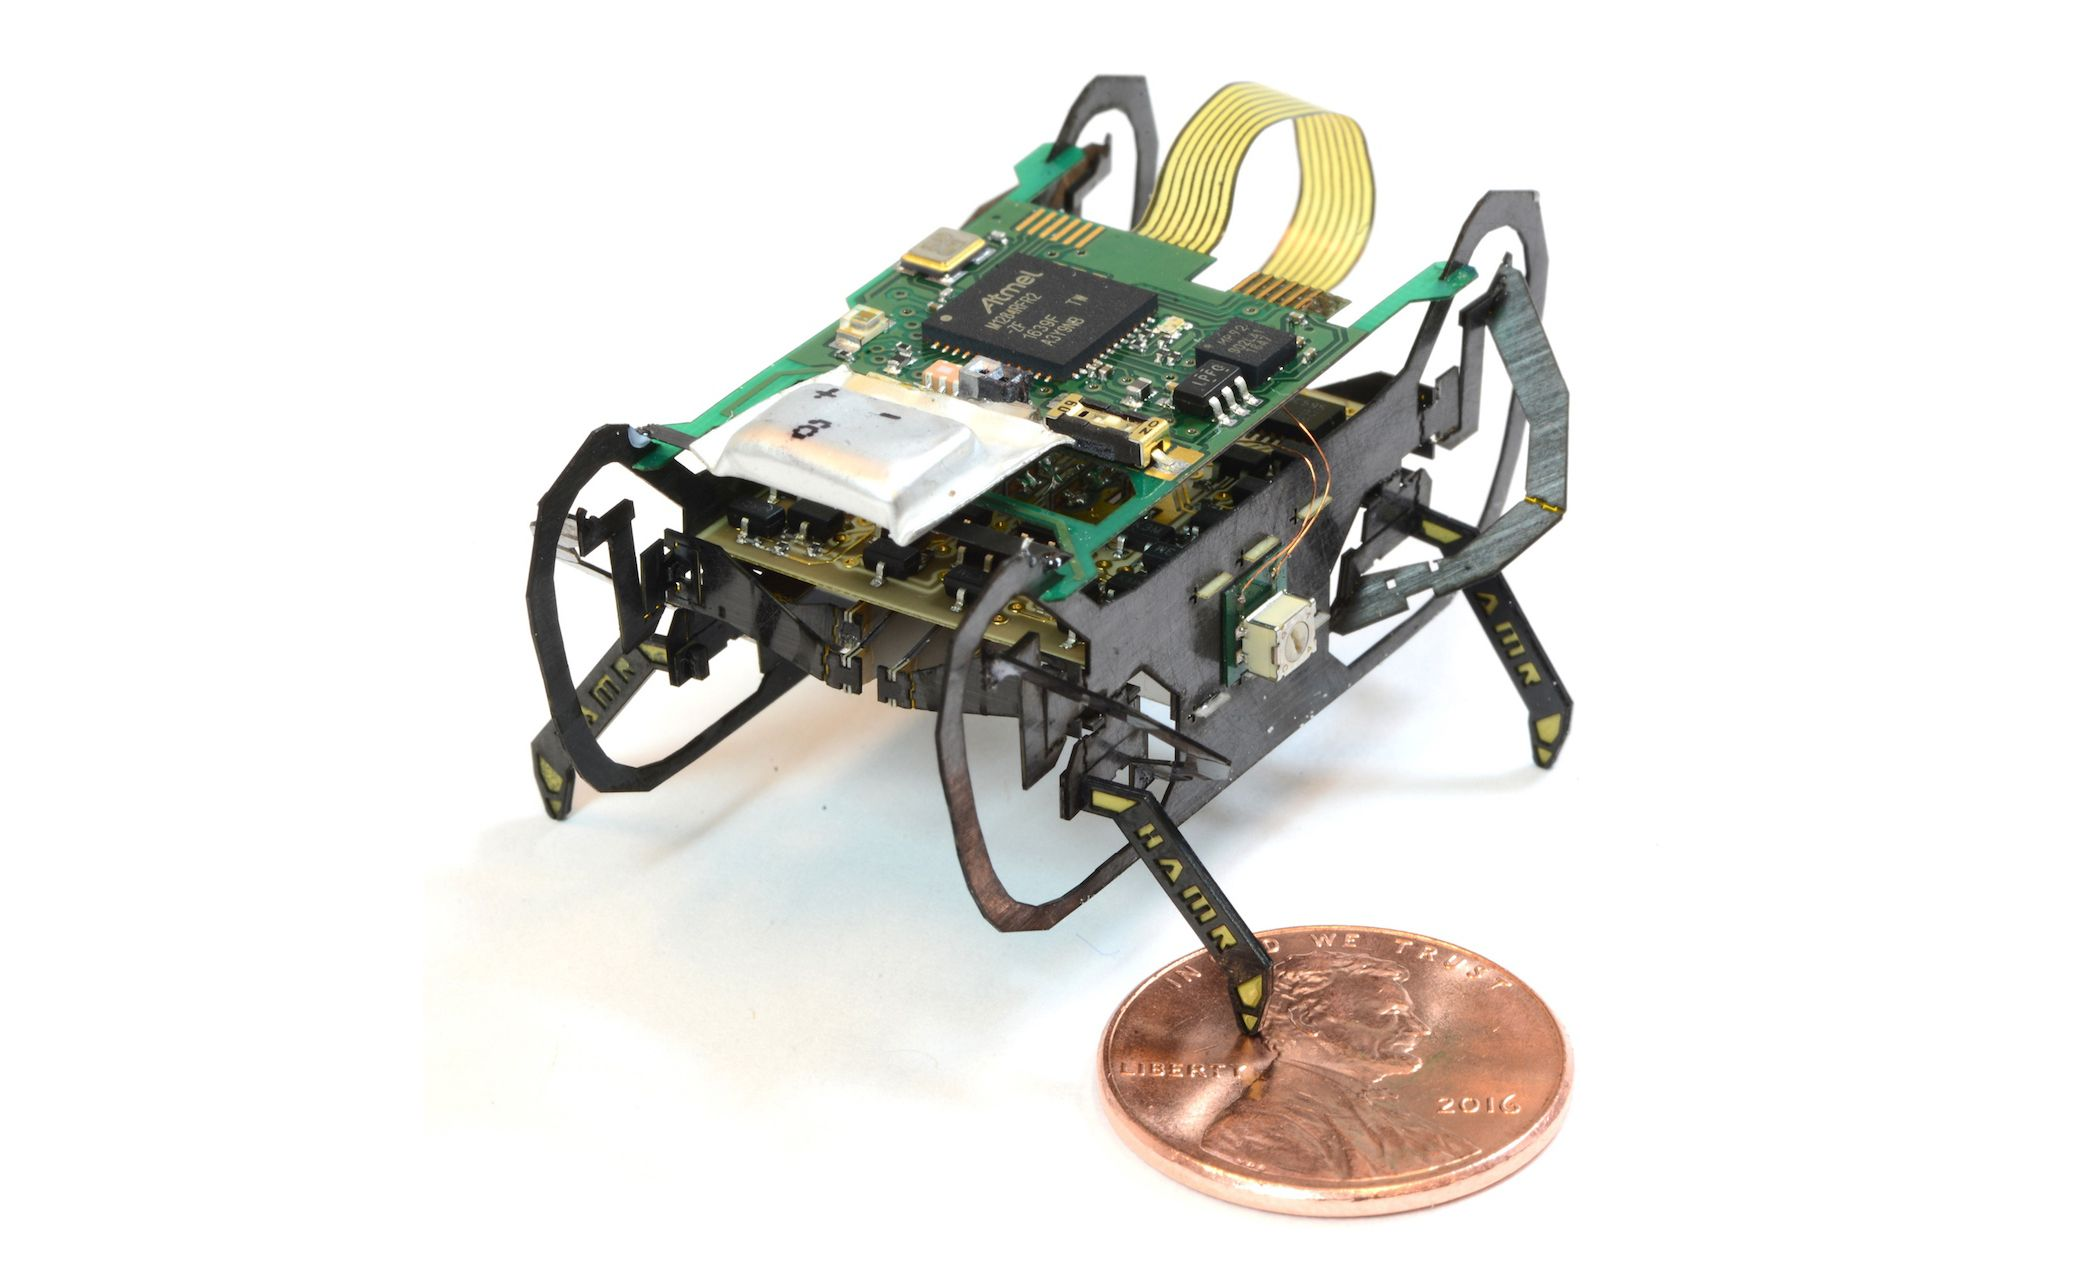 Meet HAMR, the Harvard Ambulatory MicroRobot